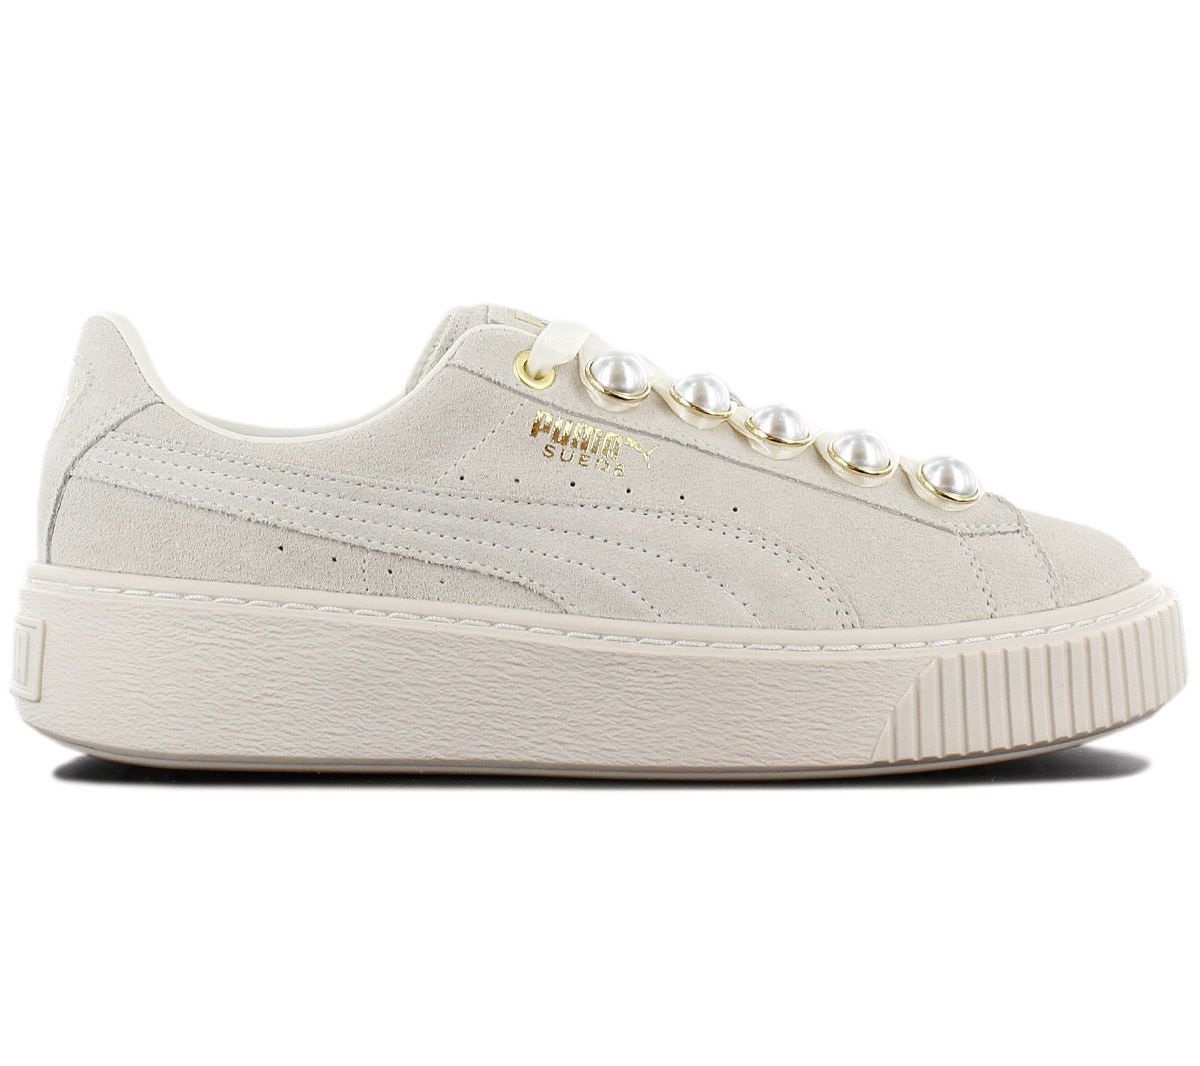 on wholesale release date Super discount Details about Puma Suede Platform Bling Sneaker Women's Shoes Grey-White  366688-02 Trainers